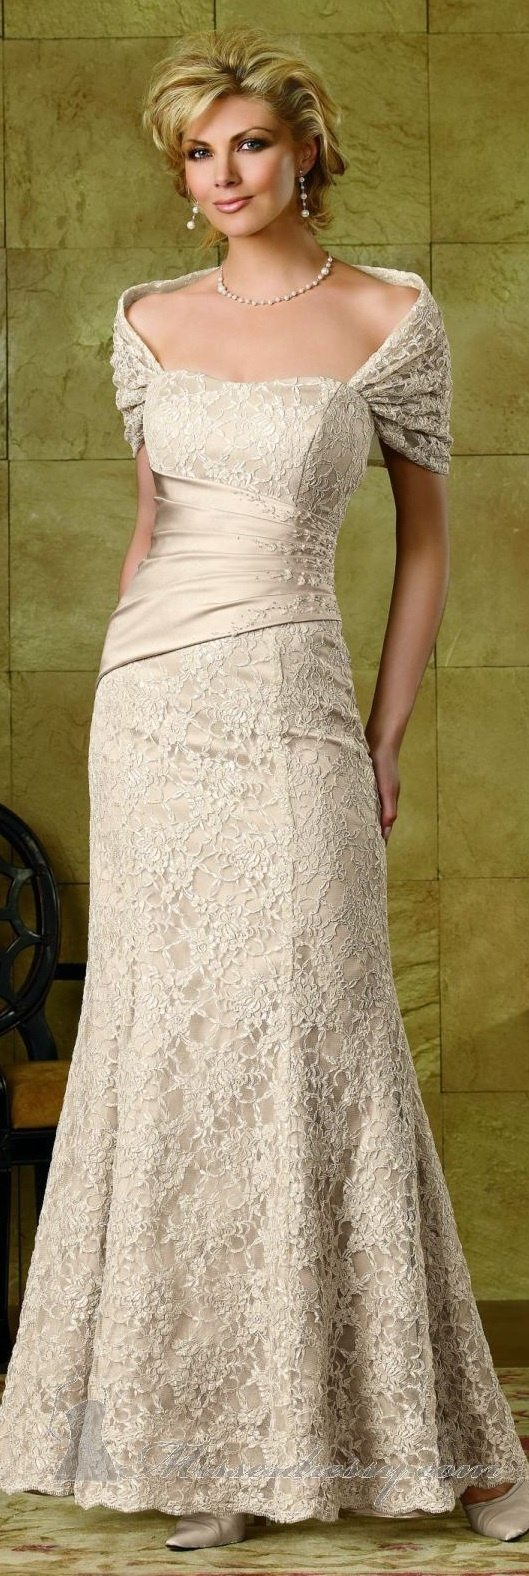 Wedding dresses older brides for Mature women wedding dress